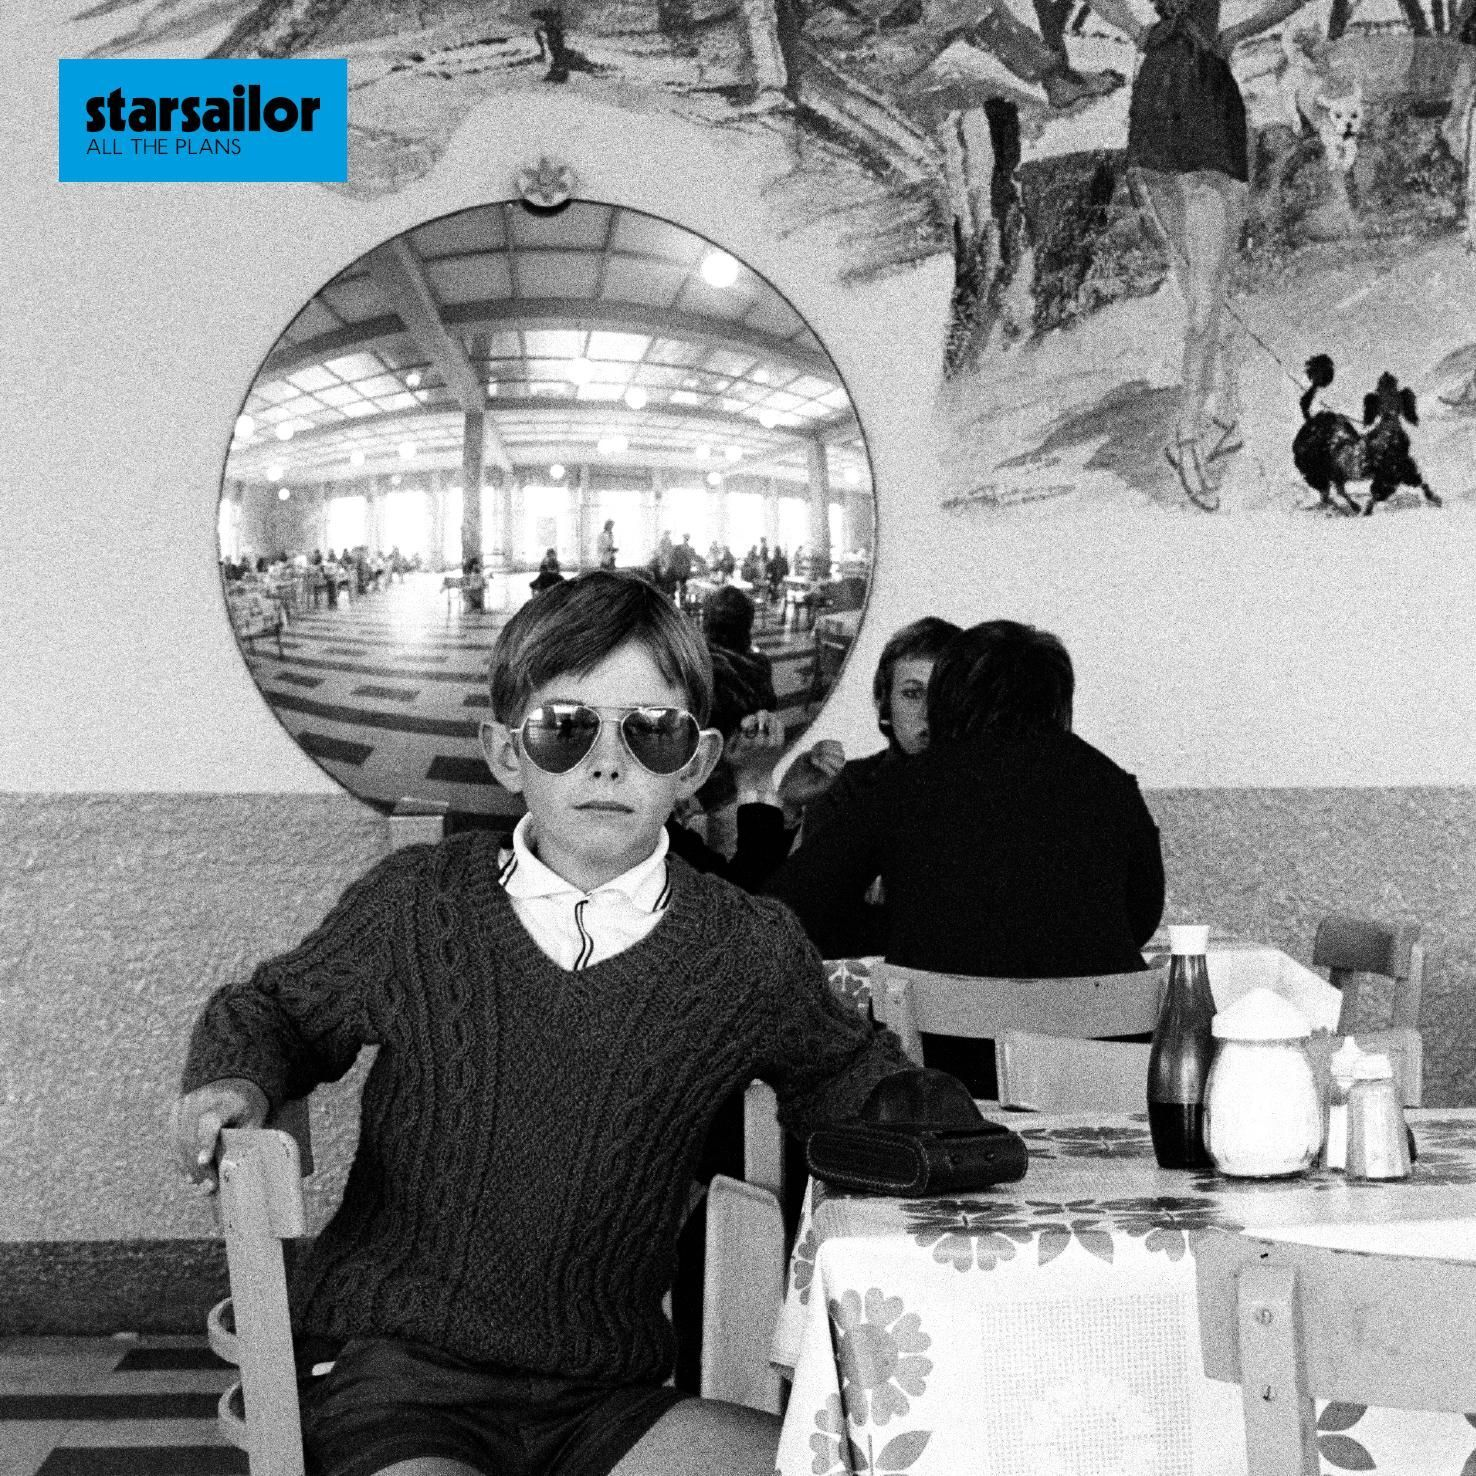 Starsailor - All The Plans album cover